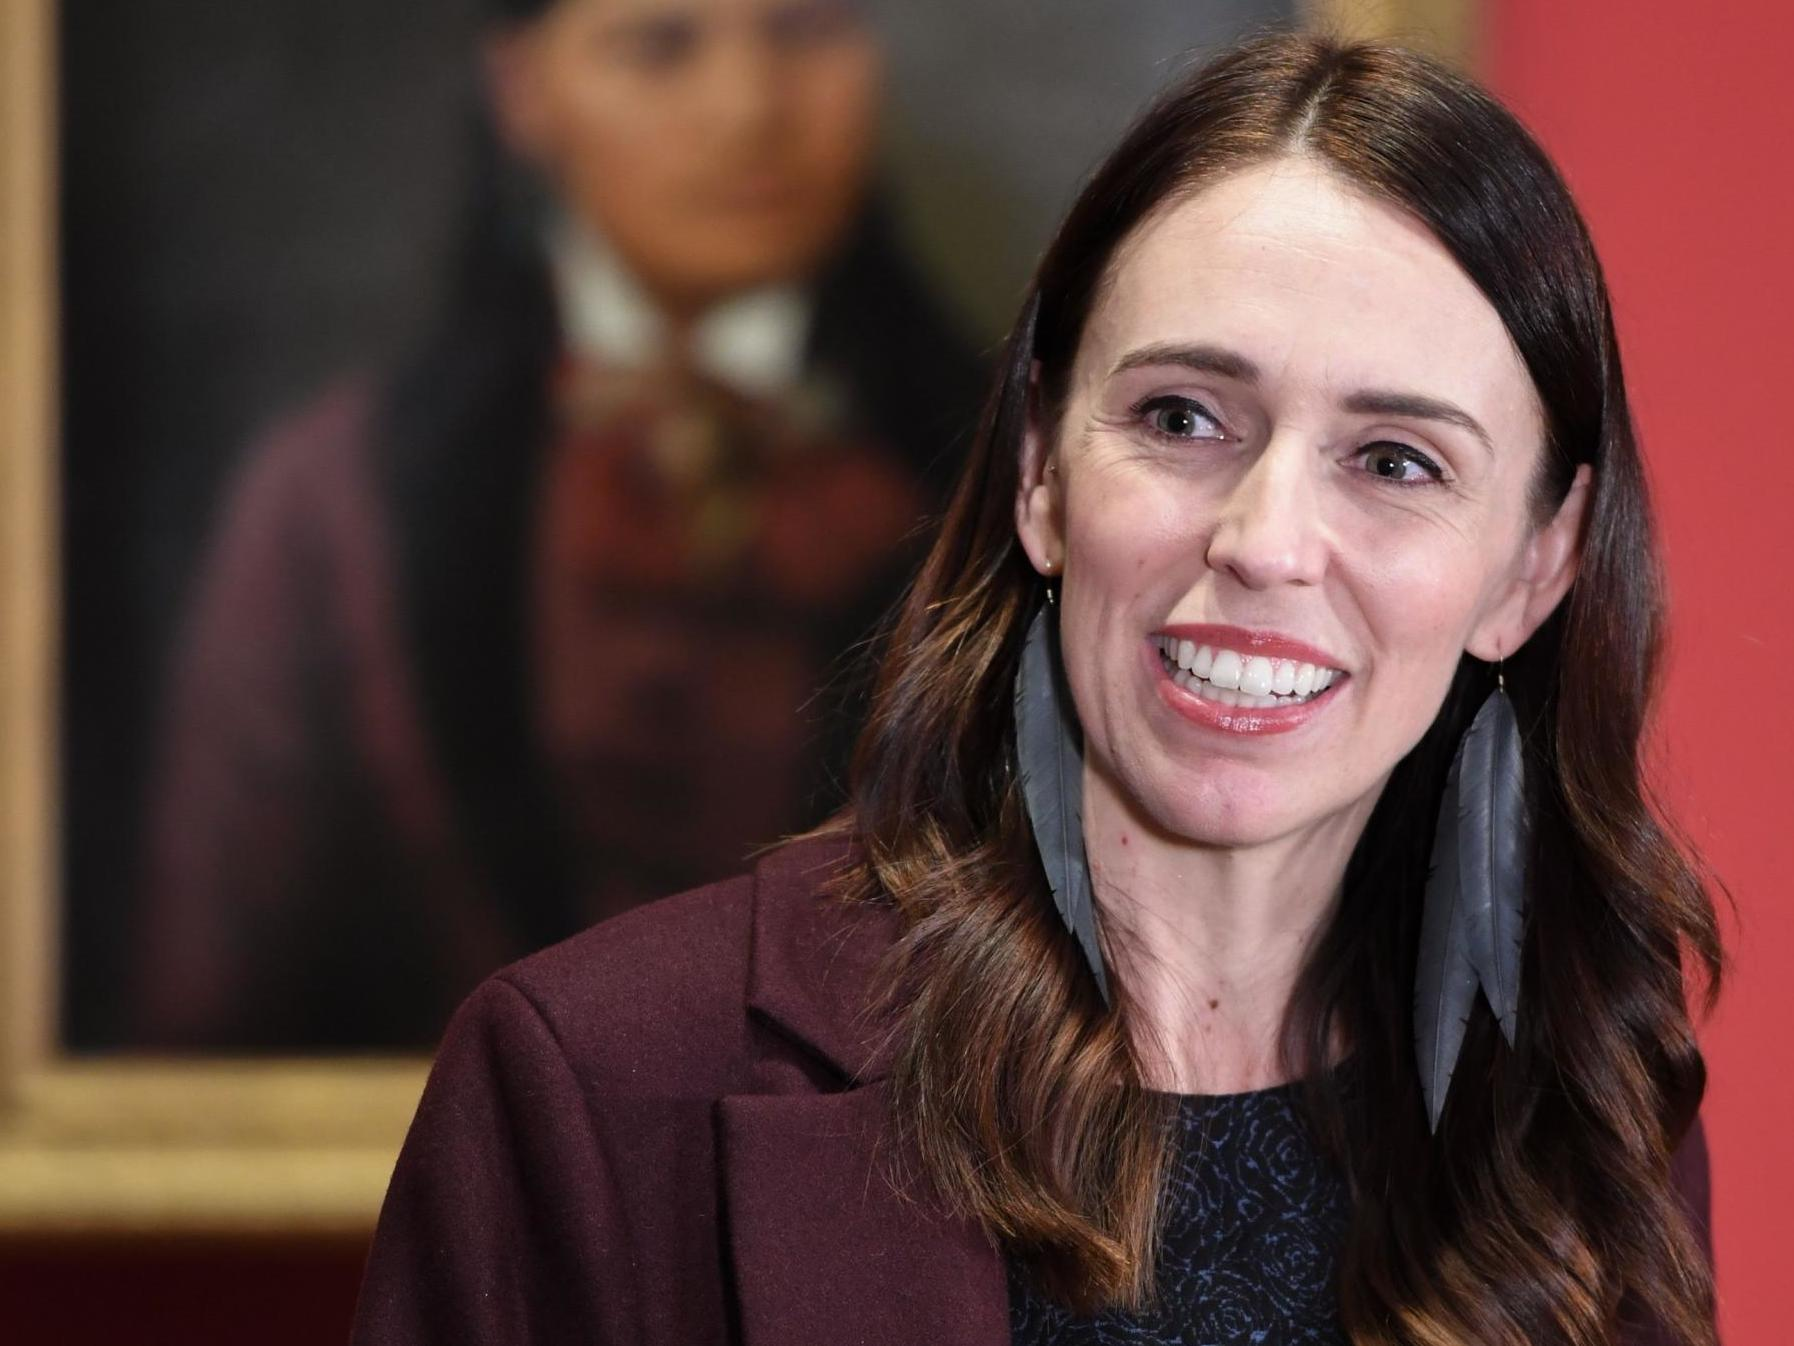 jacinda ardern zealand coronavirus covid cases after days quotes stage cov leadership kiwis lockdown confirms eliminated two independent birthday alert